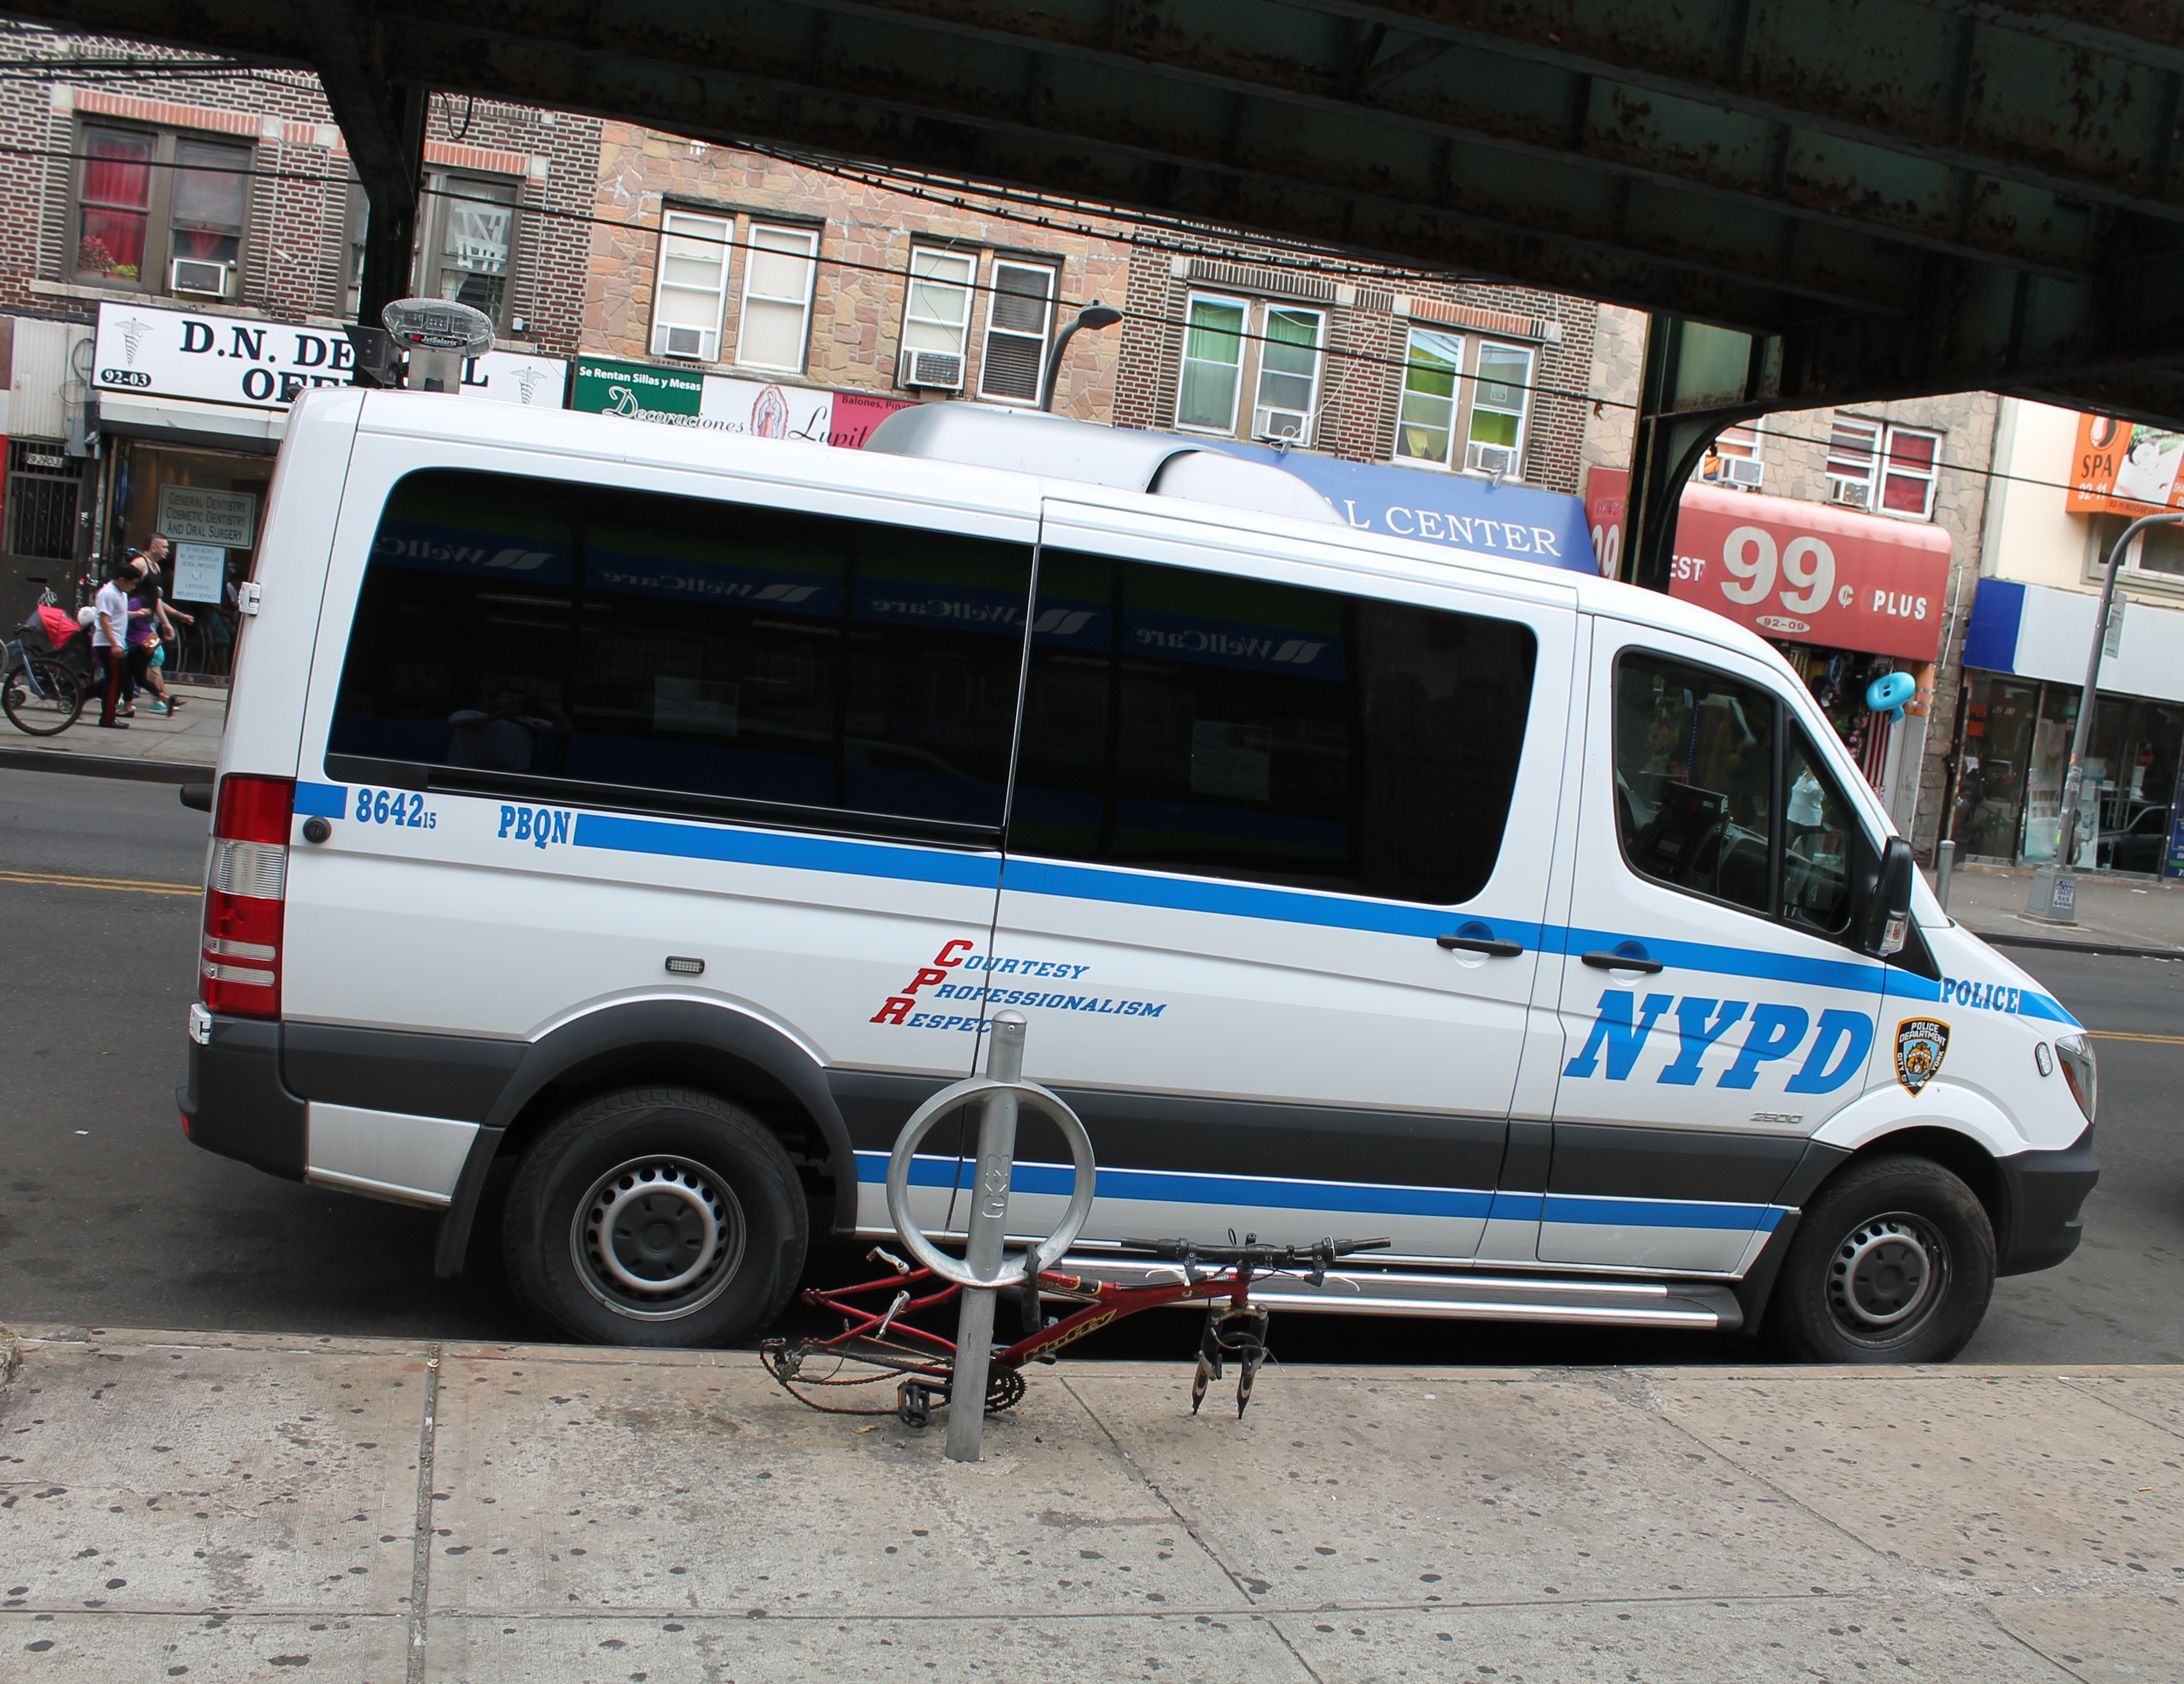 One of three NYPD vehicles parked outside the offices of Make the Road New York on Monday afternoon. Source : Louis Flores/Progress Queens